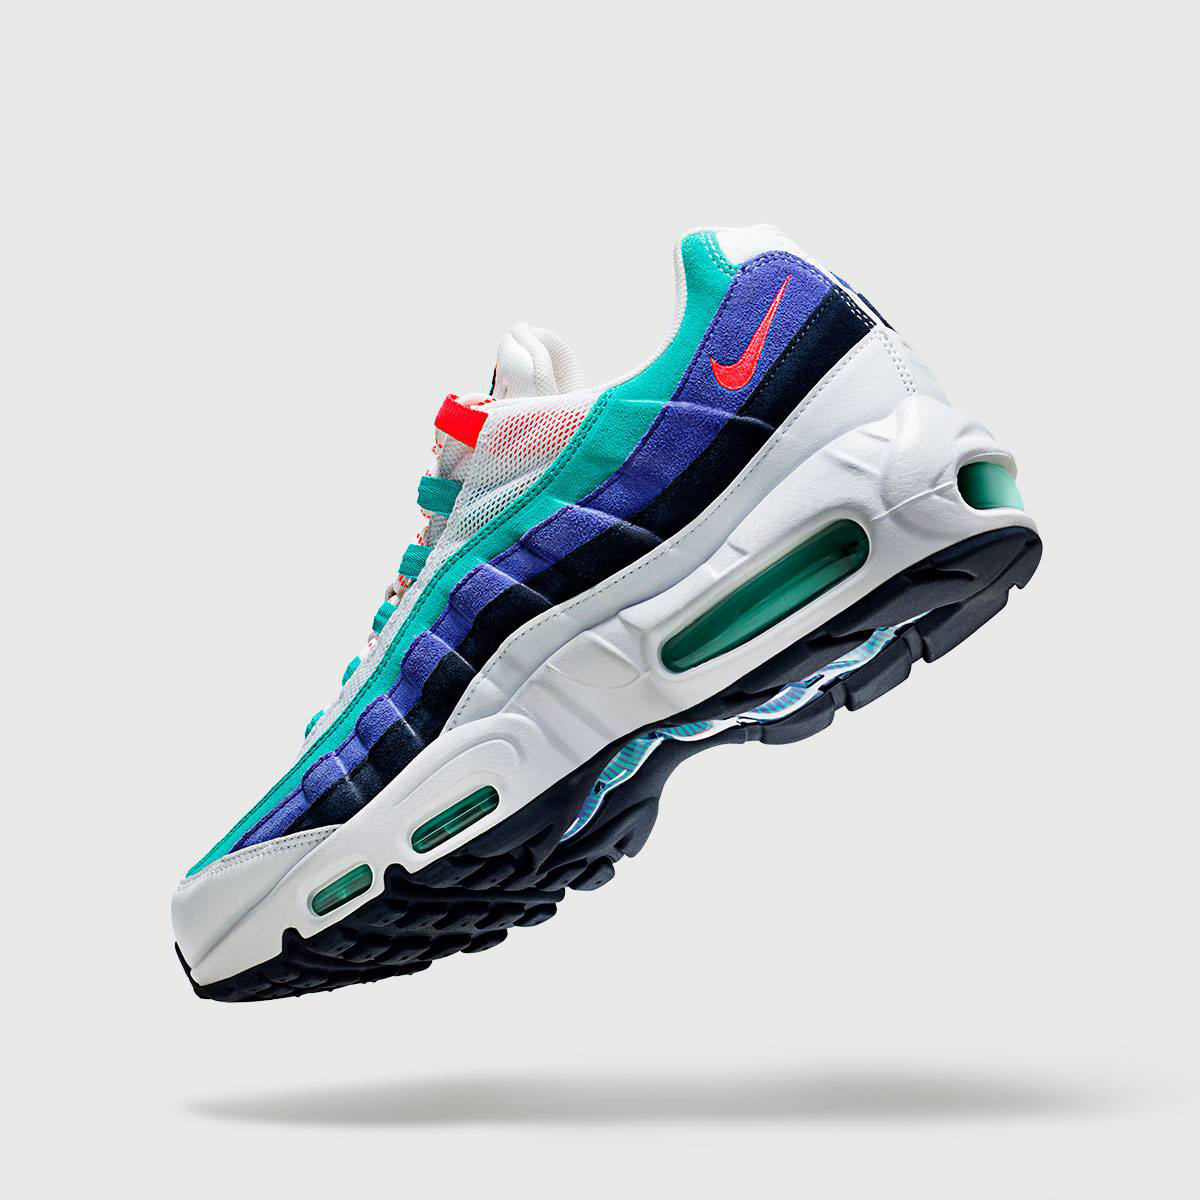 nike-air-max-plus-95-origins-clothing-match